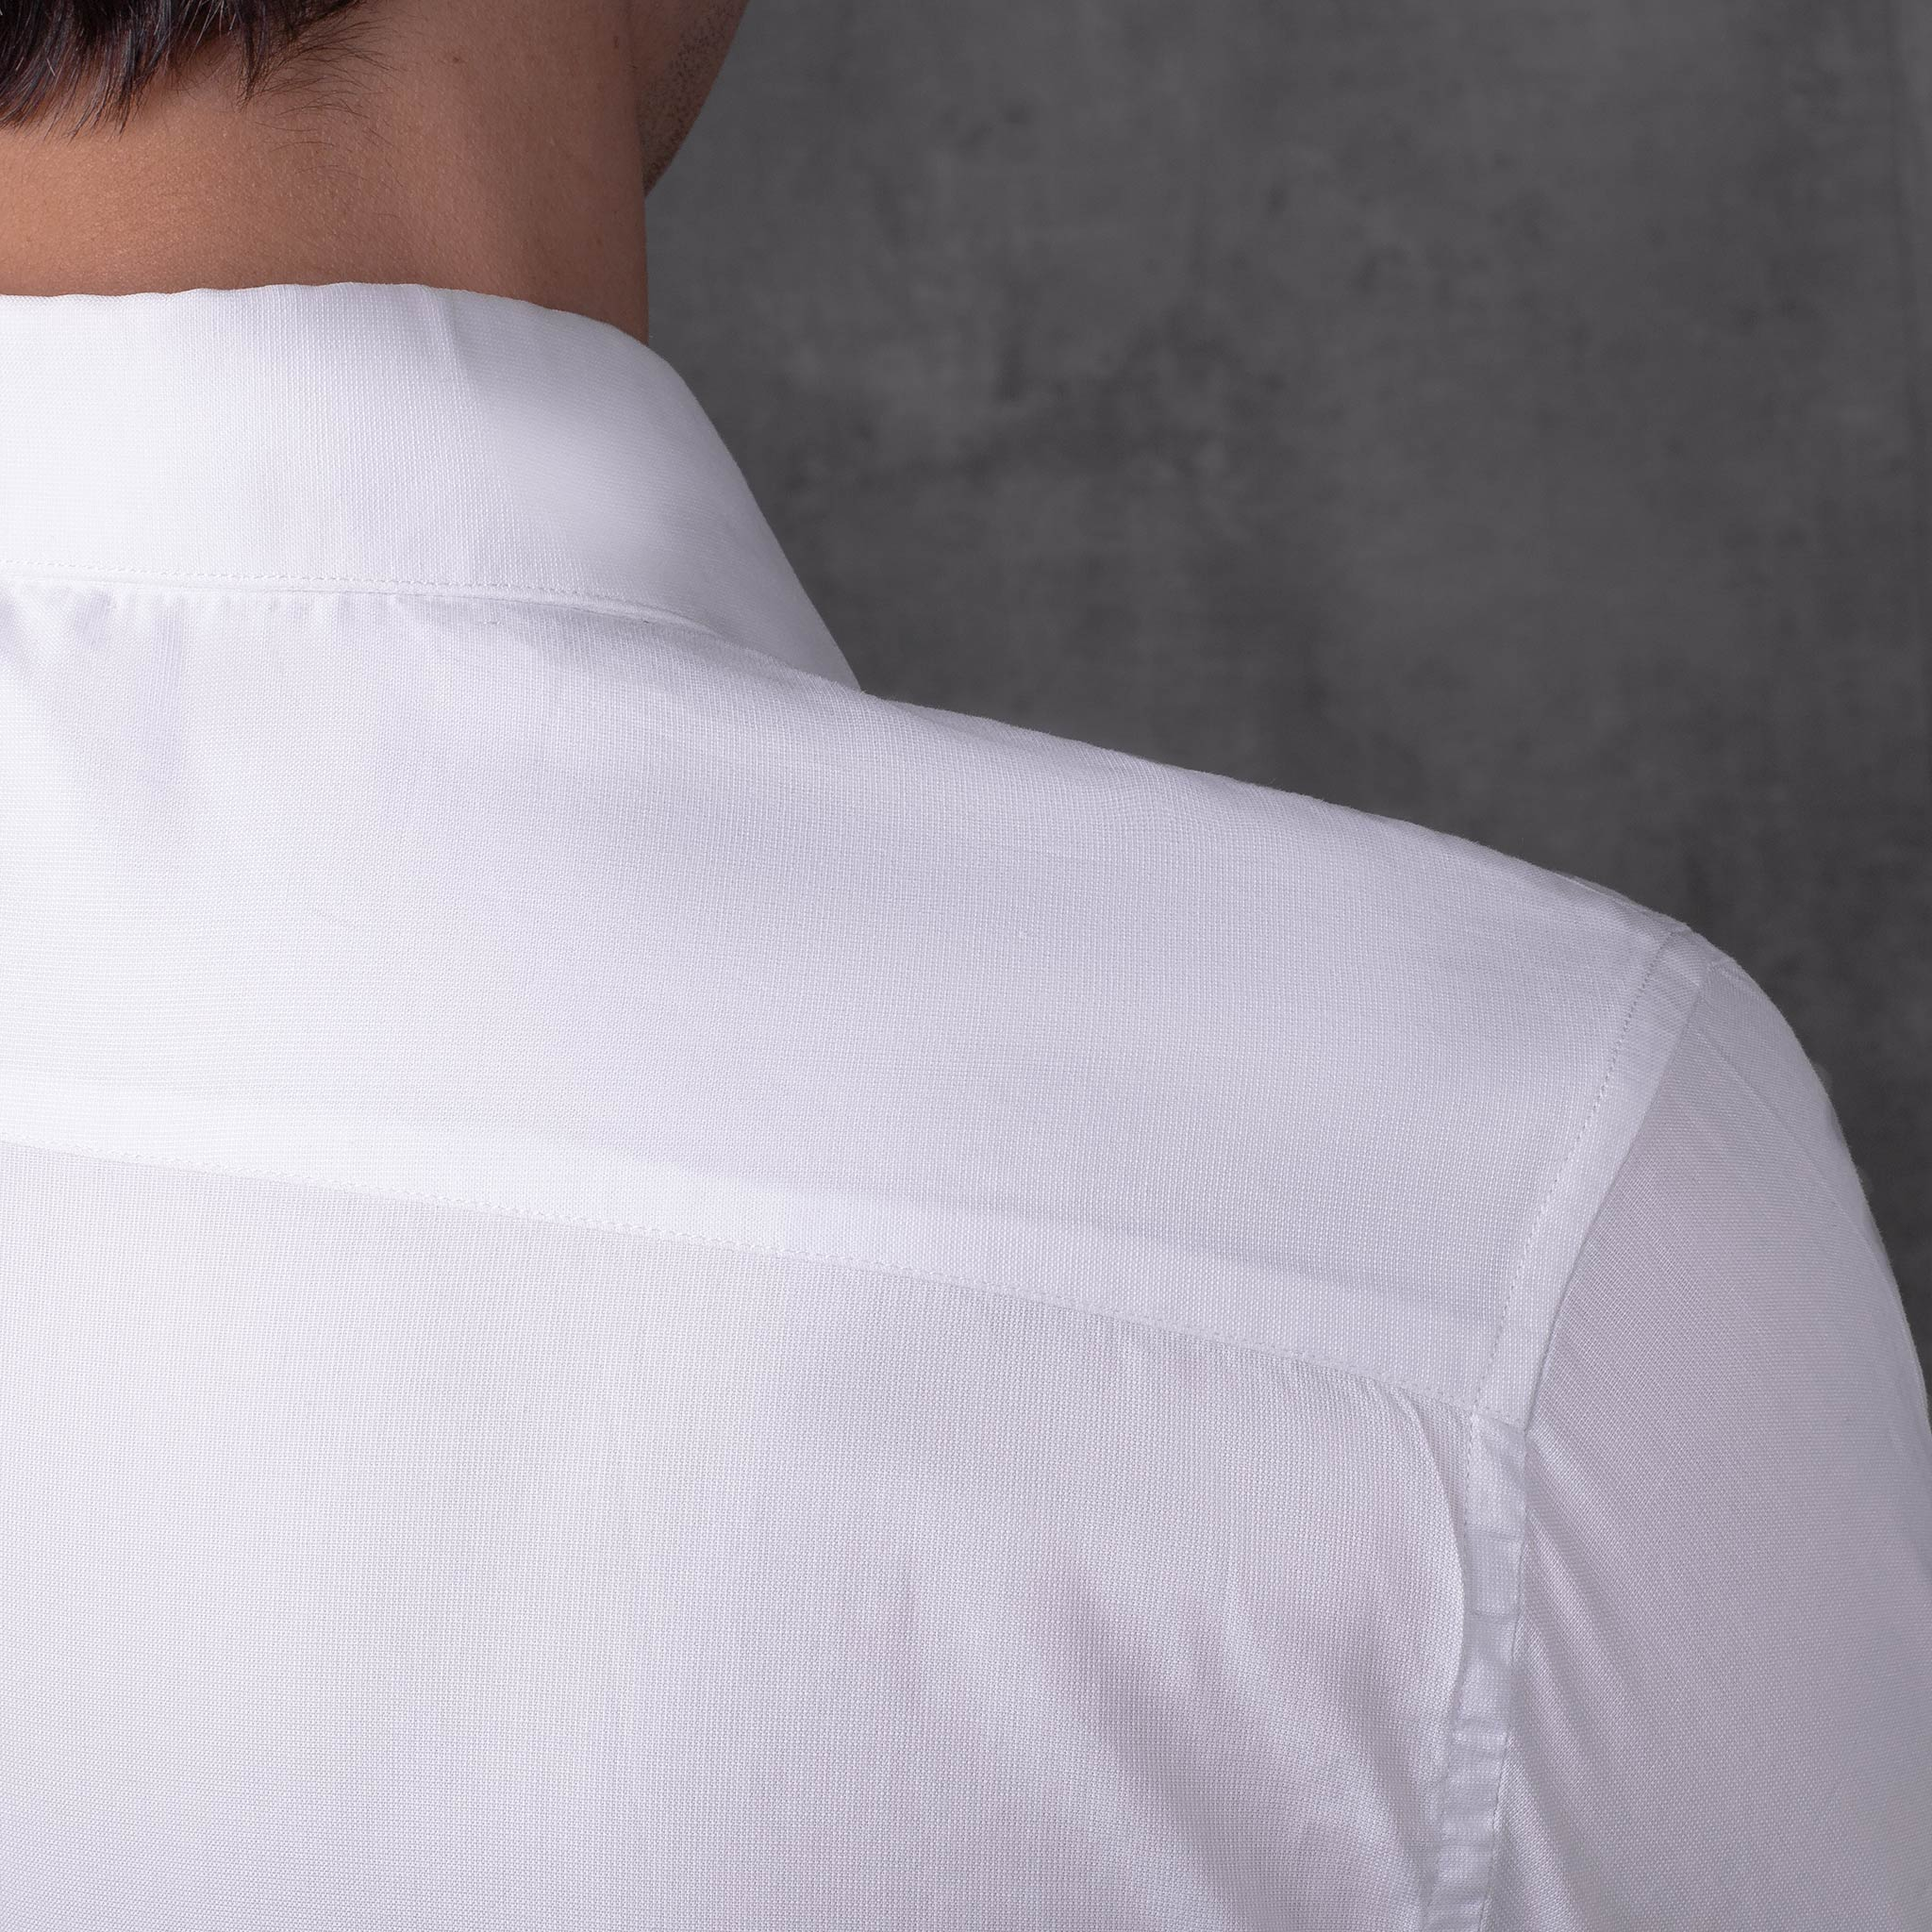 SHIRT 01.01 WHITE CAMISA 01.01 BLANCA The Seëlk 10